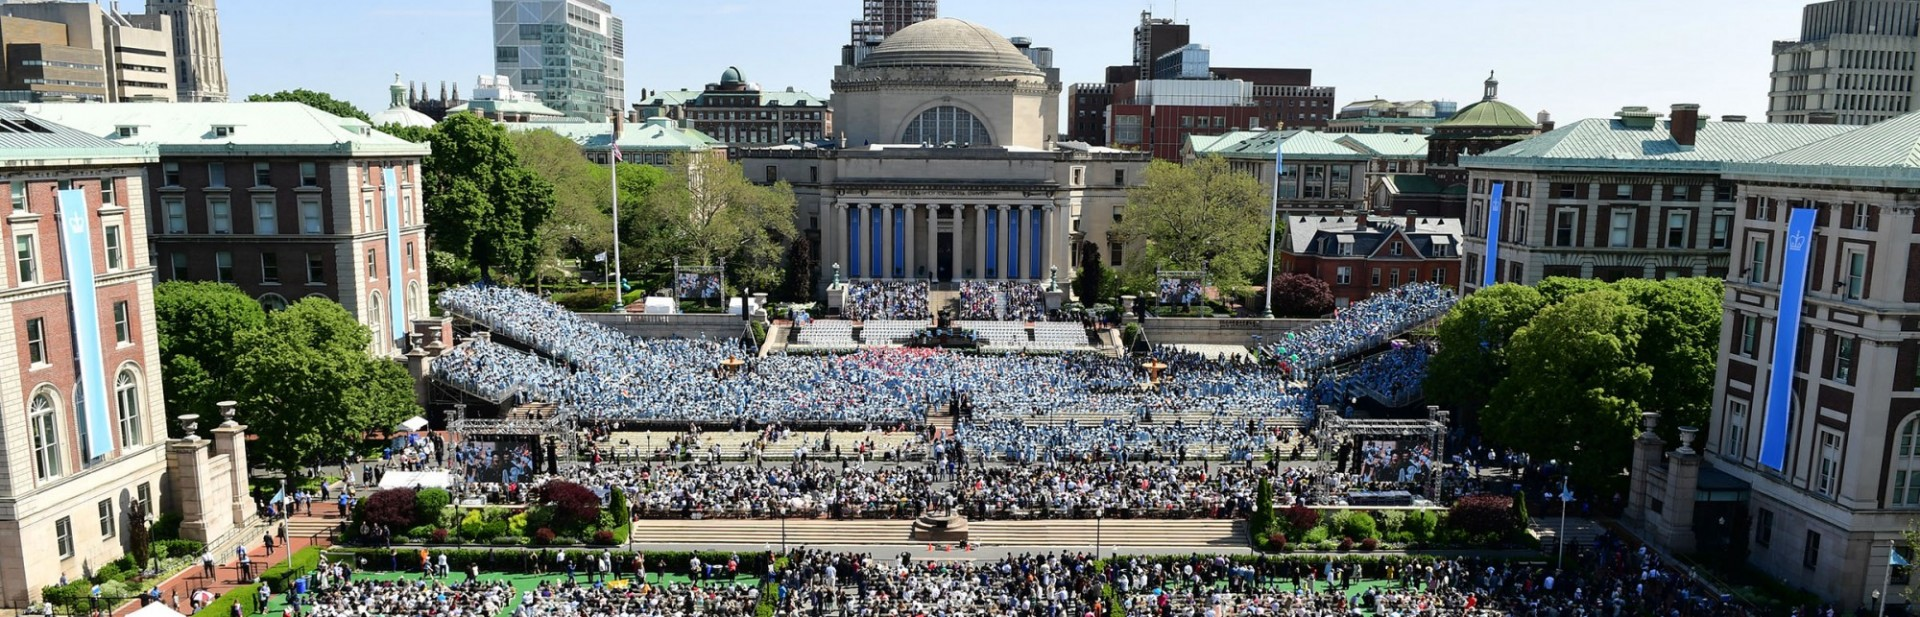 Photo of Low Library and the Columbia steps on the Morningside Campus, filled with people during Commencement